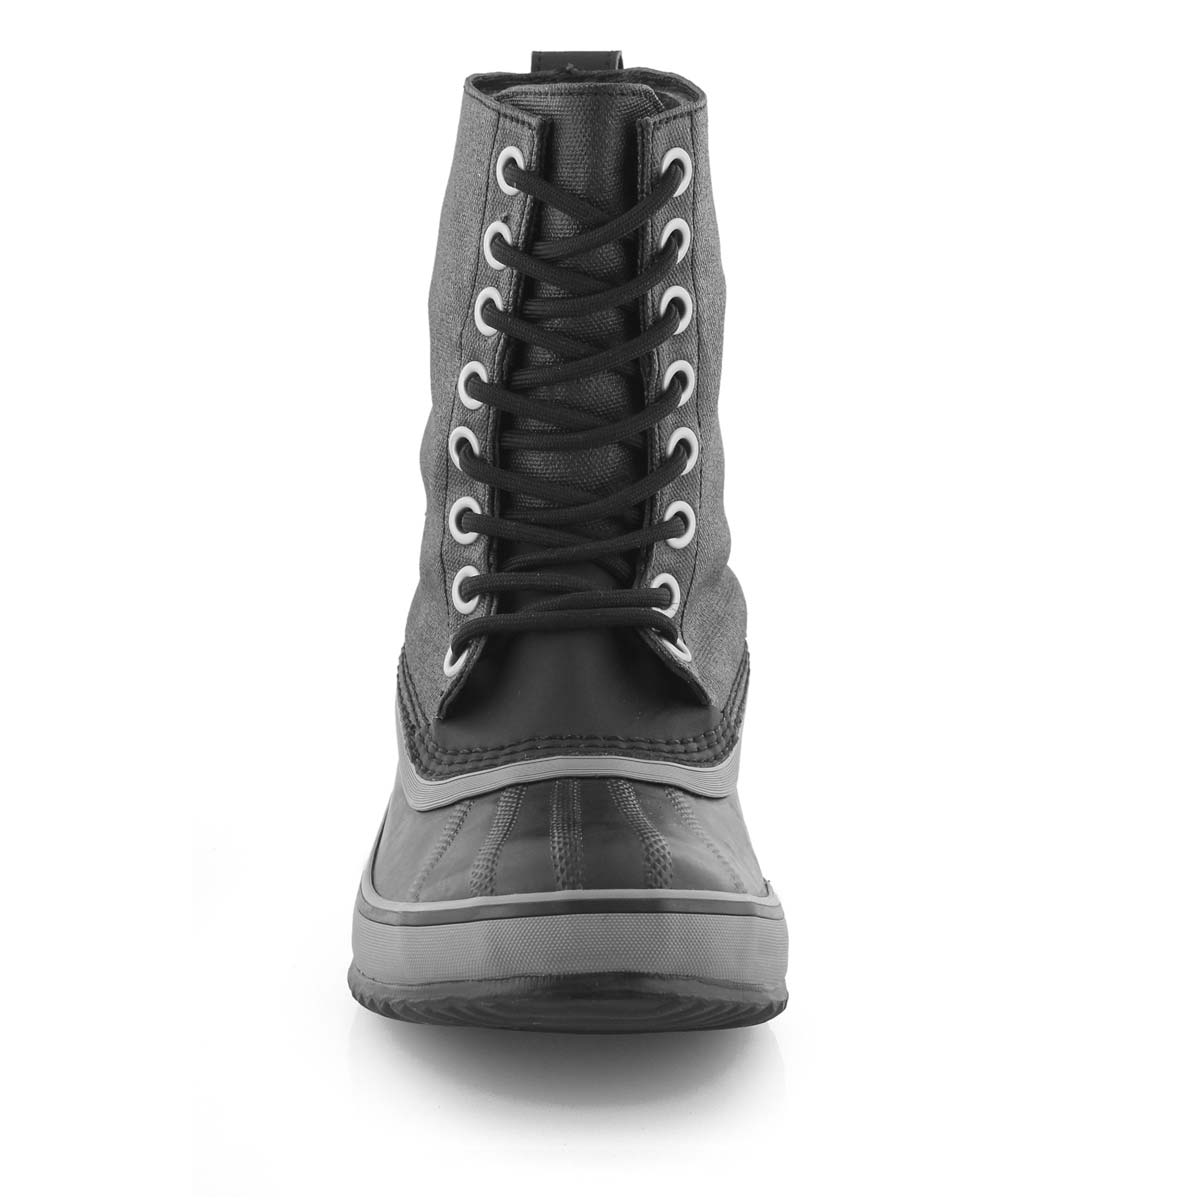 Lds 1964 CVS blk/qry wtpf winter boot